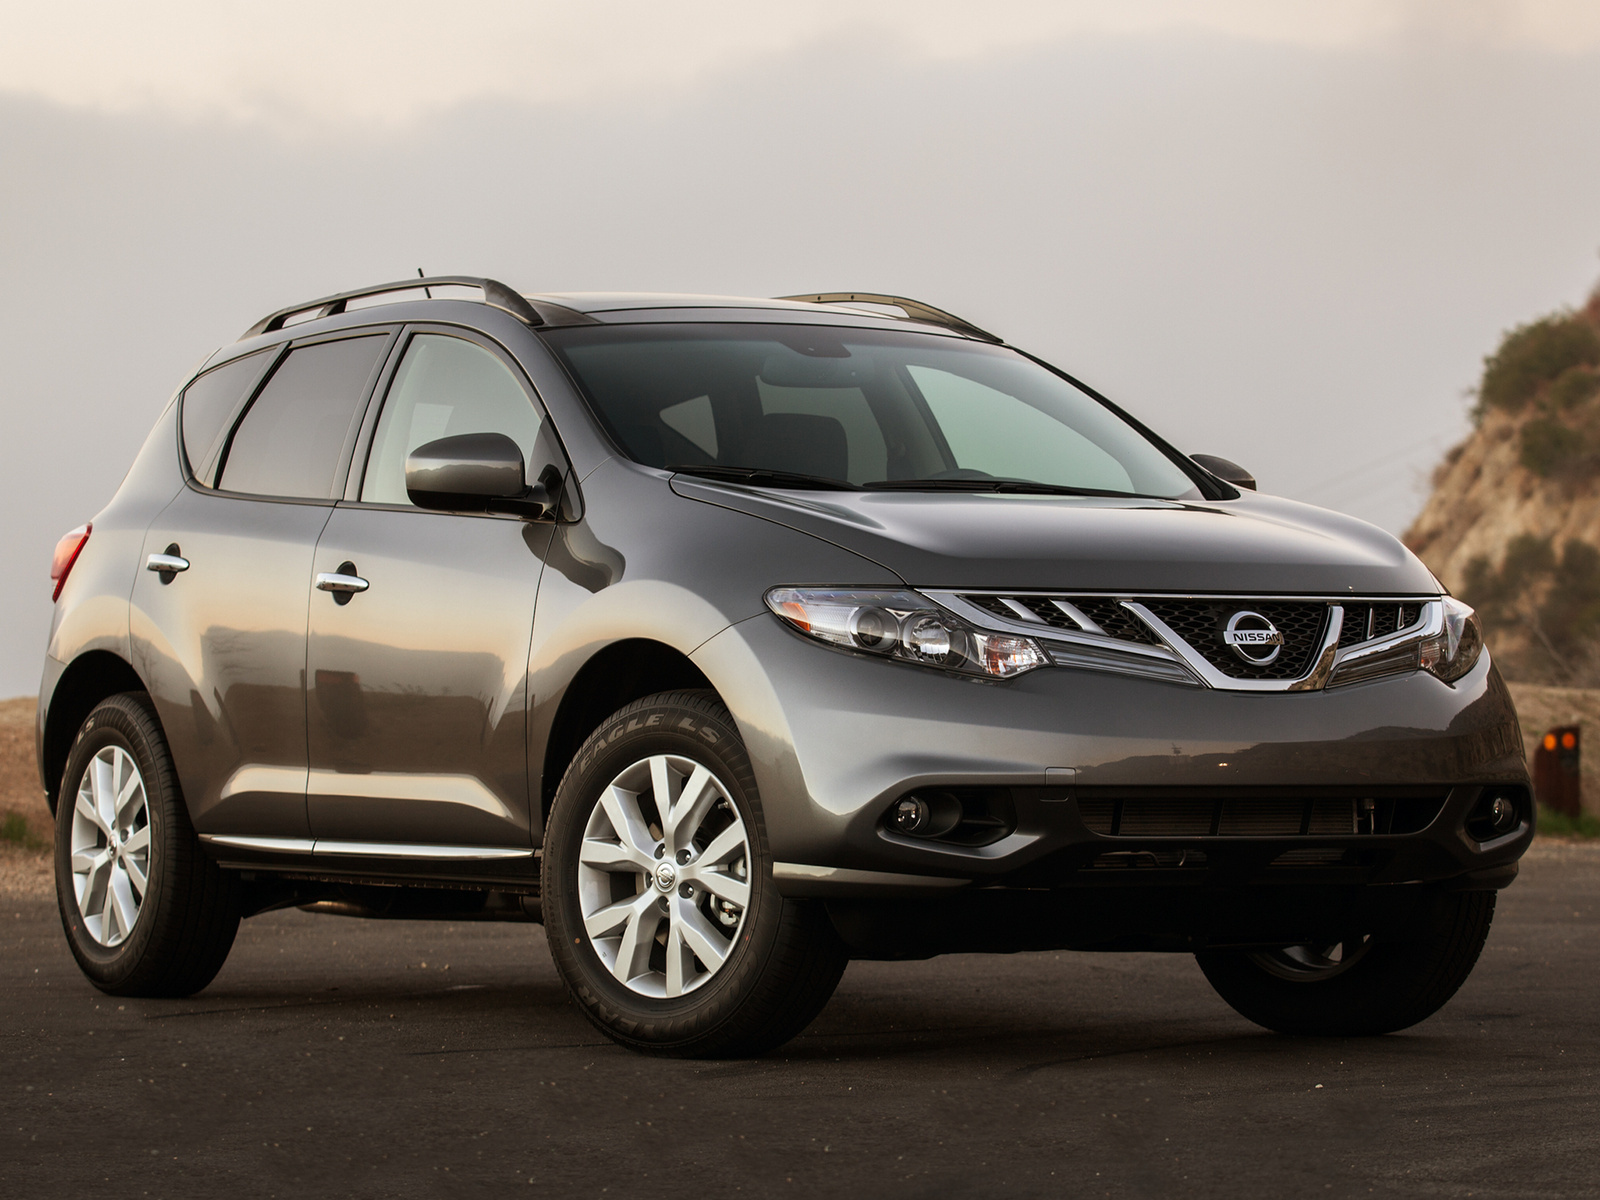 2013 nissan murano - overview